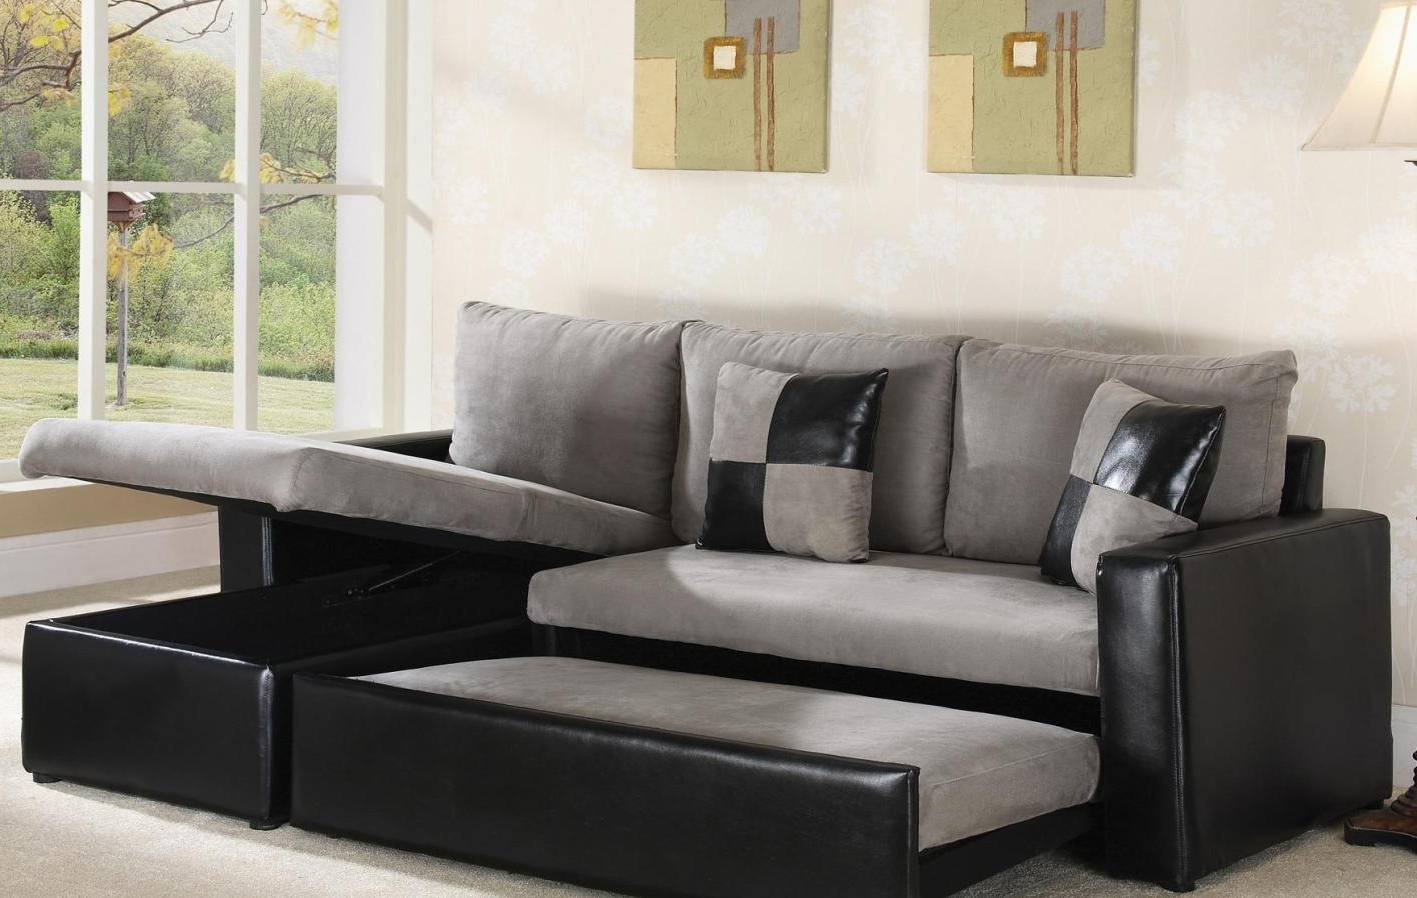 Living Room : Valuable Living Room Furniture For Sale Winnipeg For Well Liked Greenville Nc Sectional Sofas (View 15 of 20)